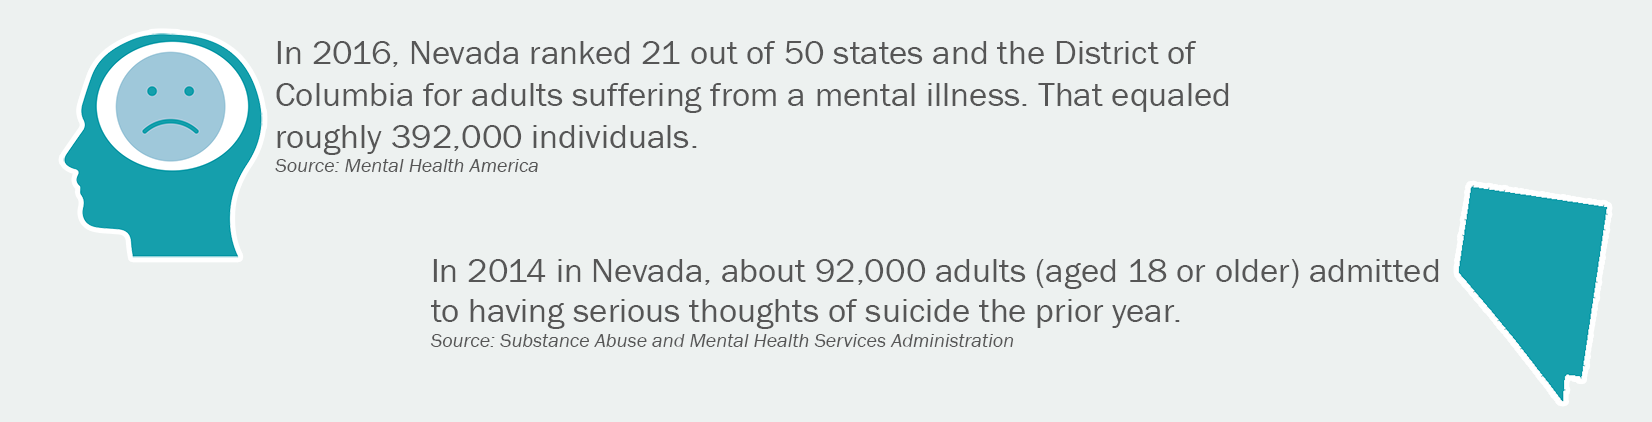 Mental Health Facts 2